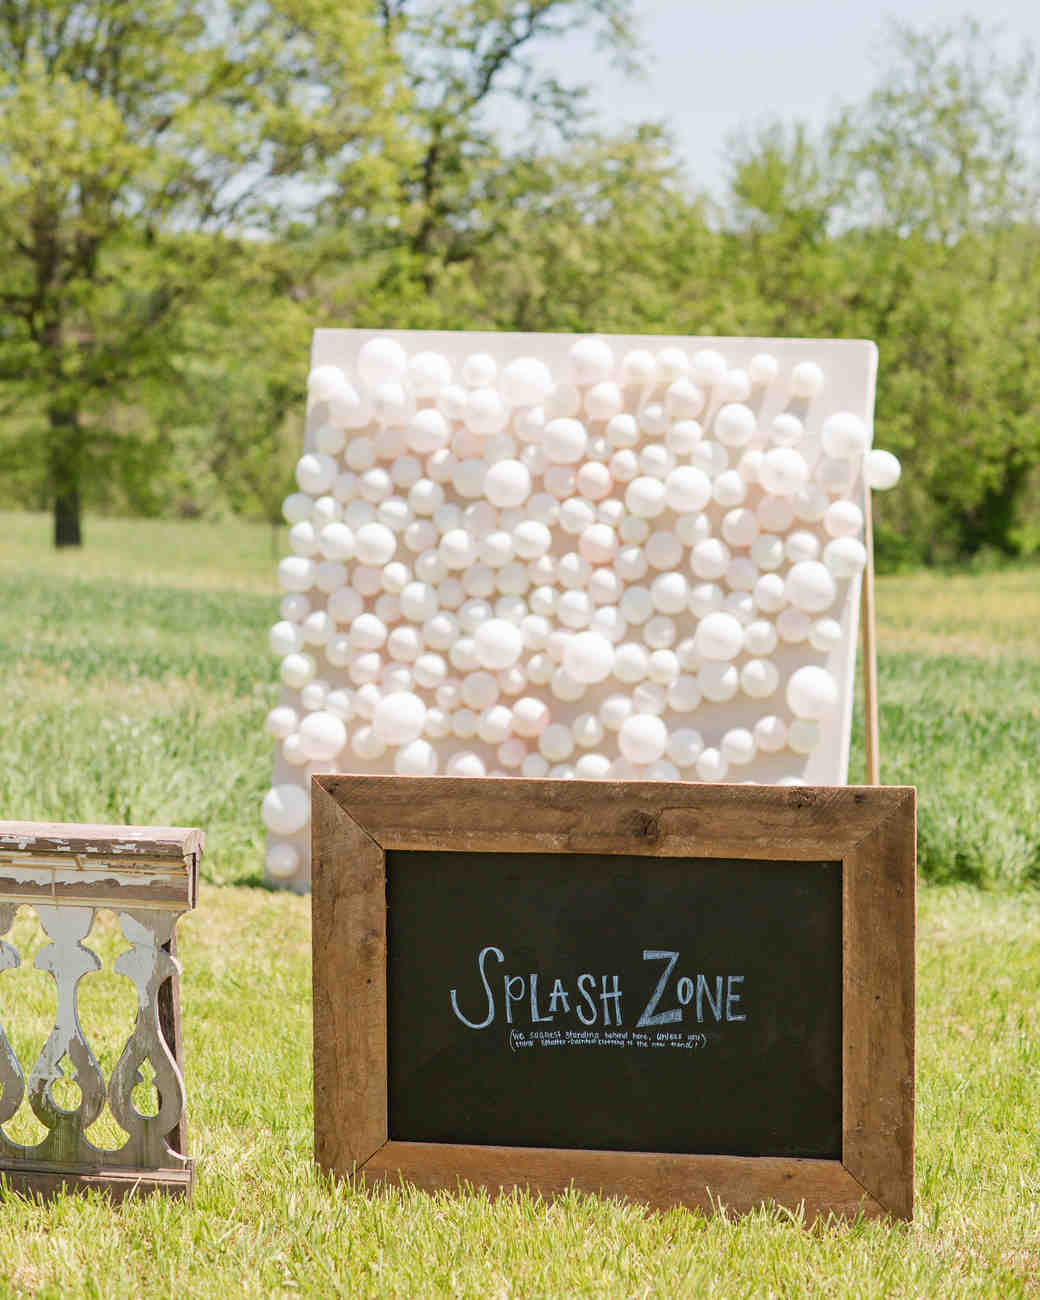 Video Game Wedding Ideas: Fun Wedding Games That'll Keep Guests Laughing